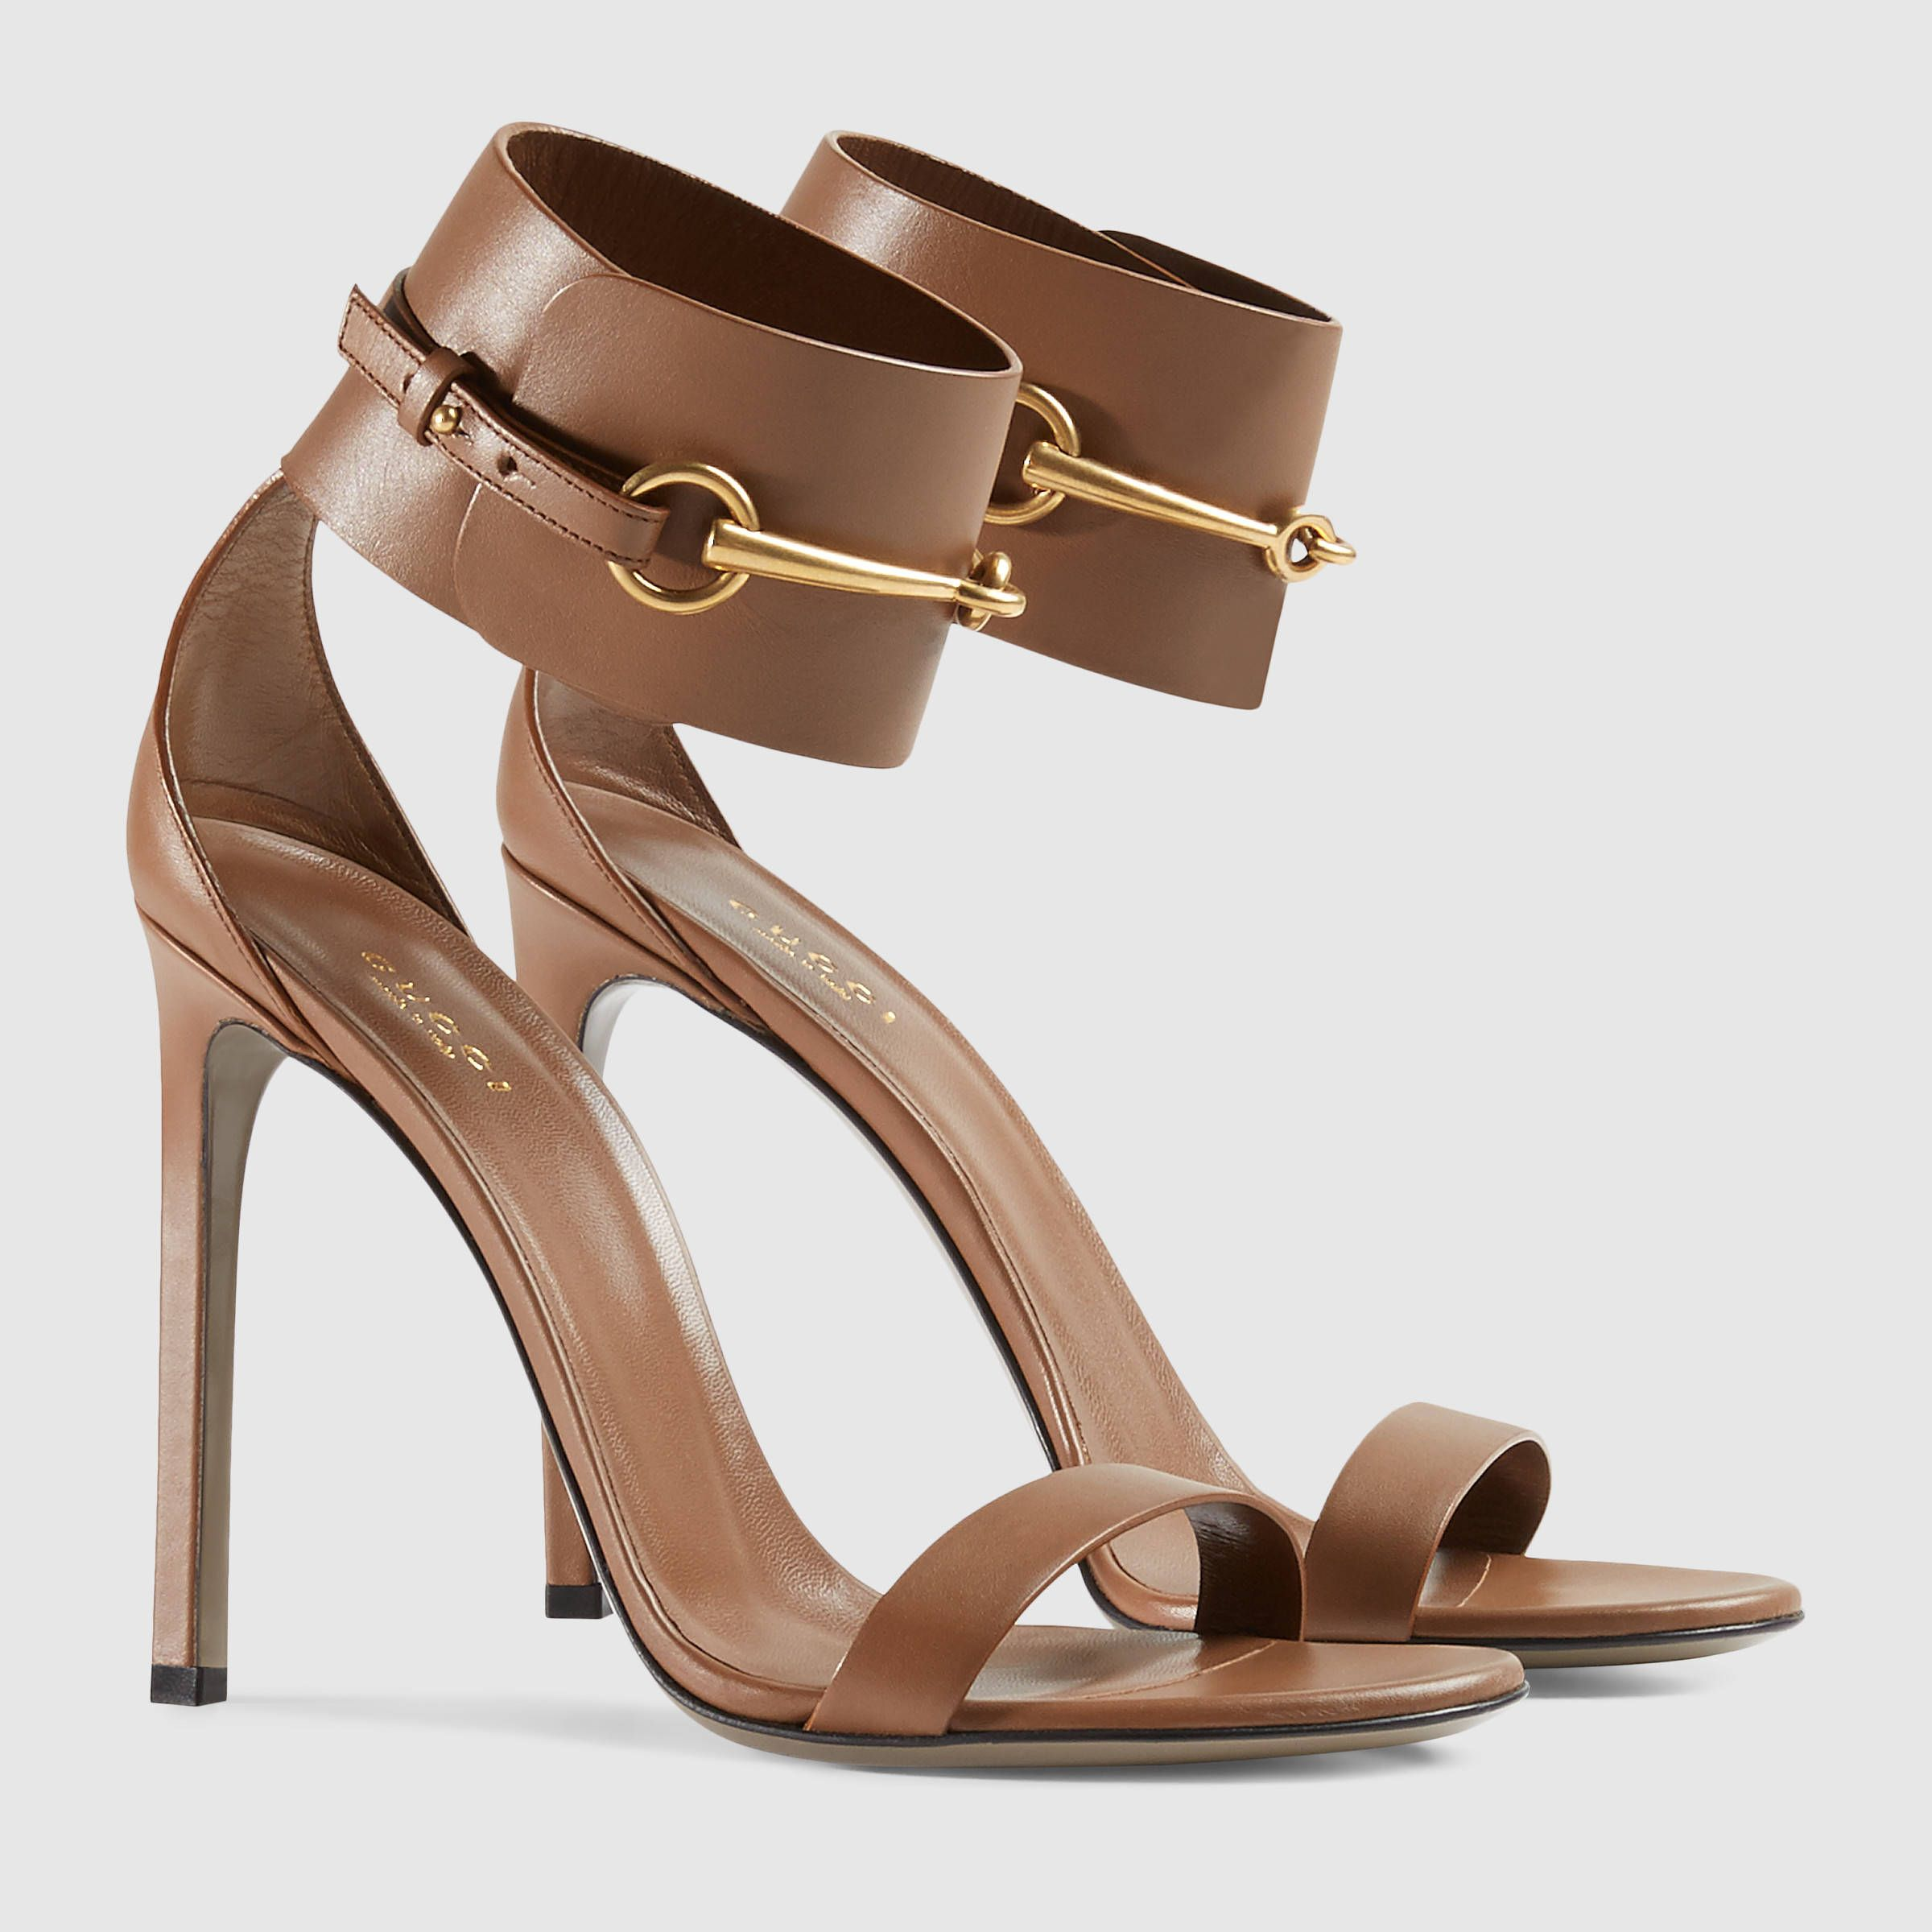 e893d20f1 Gucci Women - Ankle-strap leather sandal - 319587A3N002527 | sandals ...